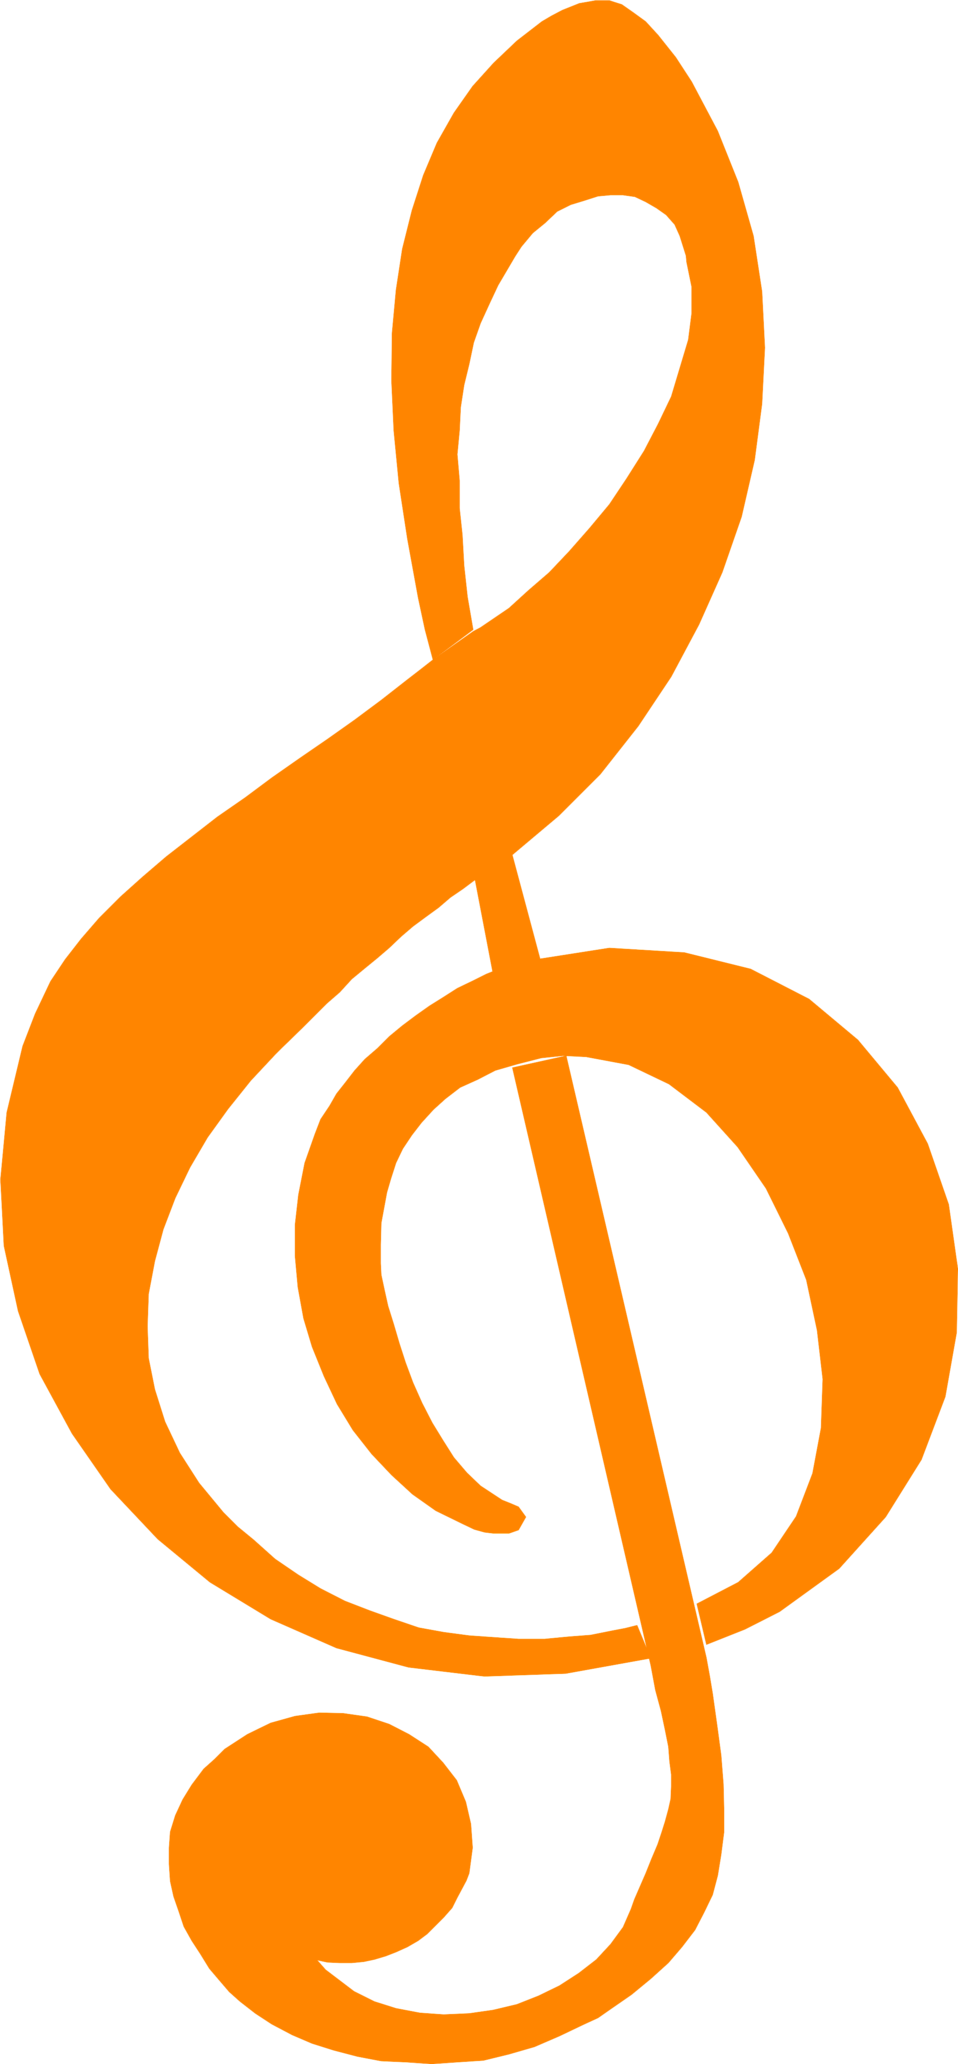 Music Note Symbol Cliparts